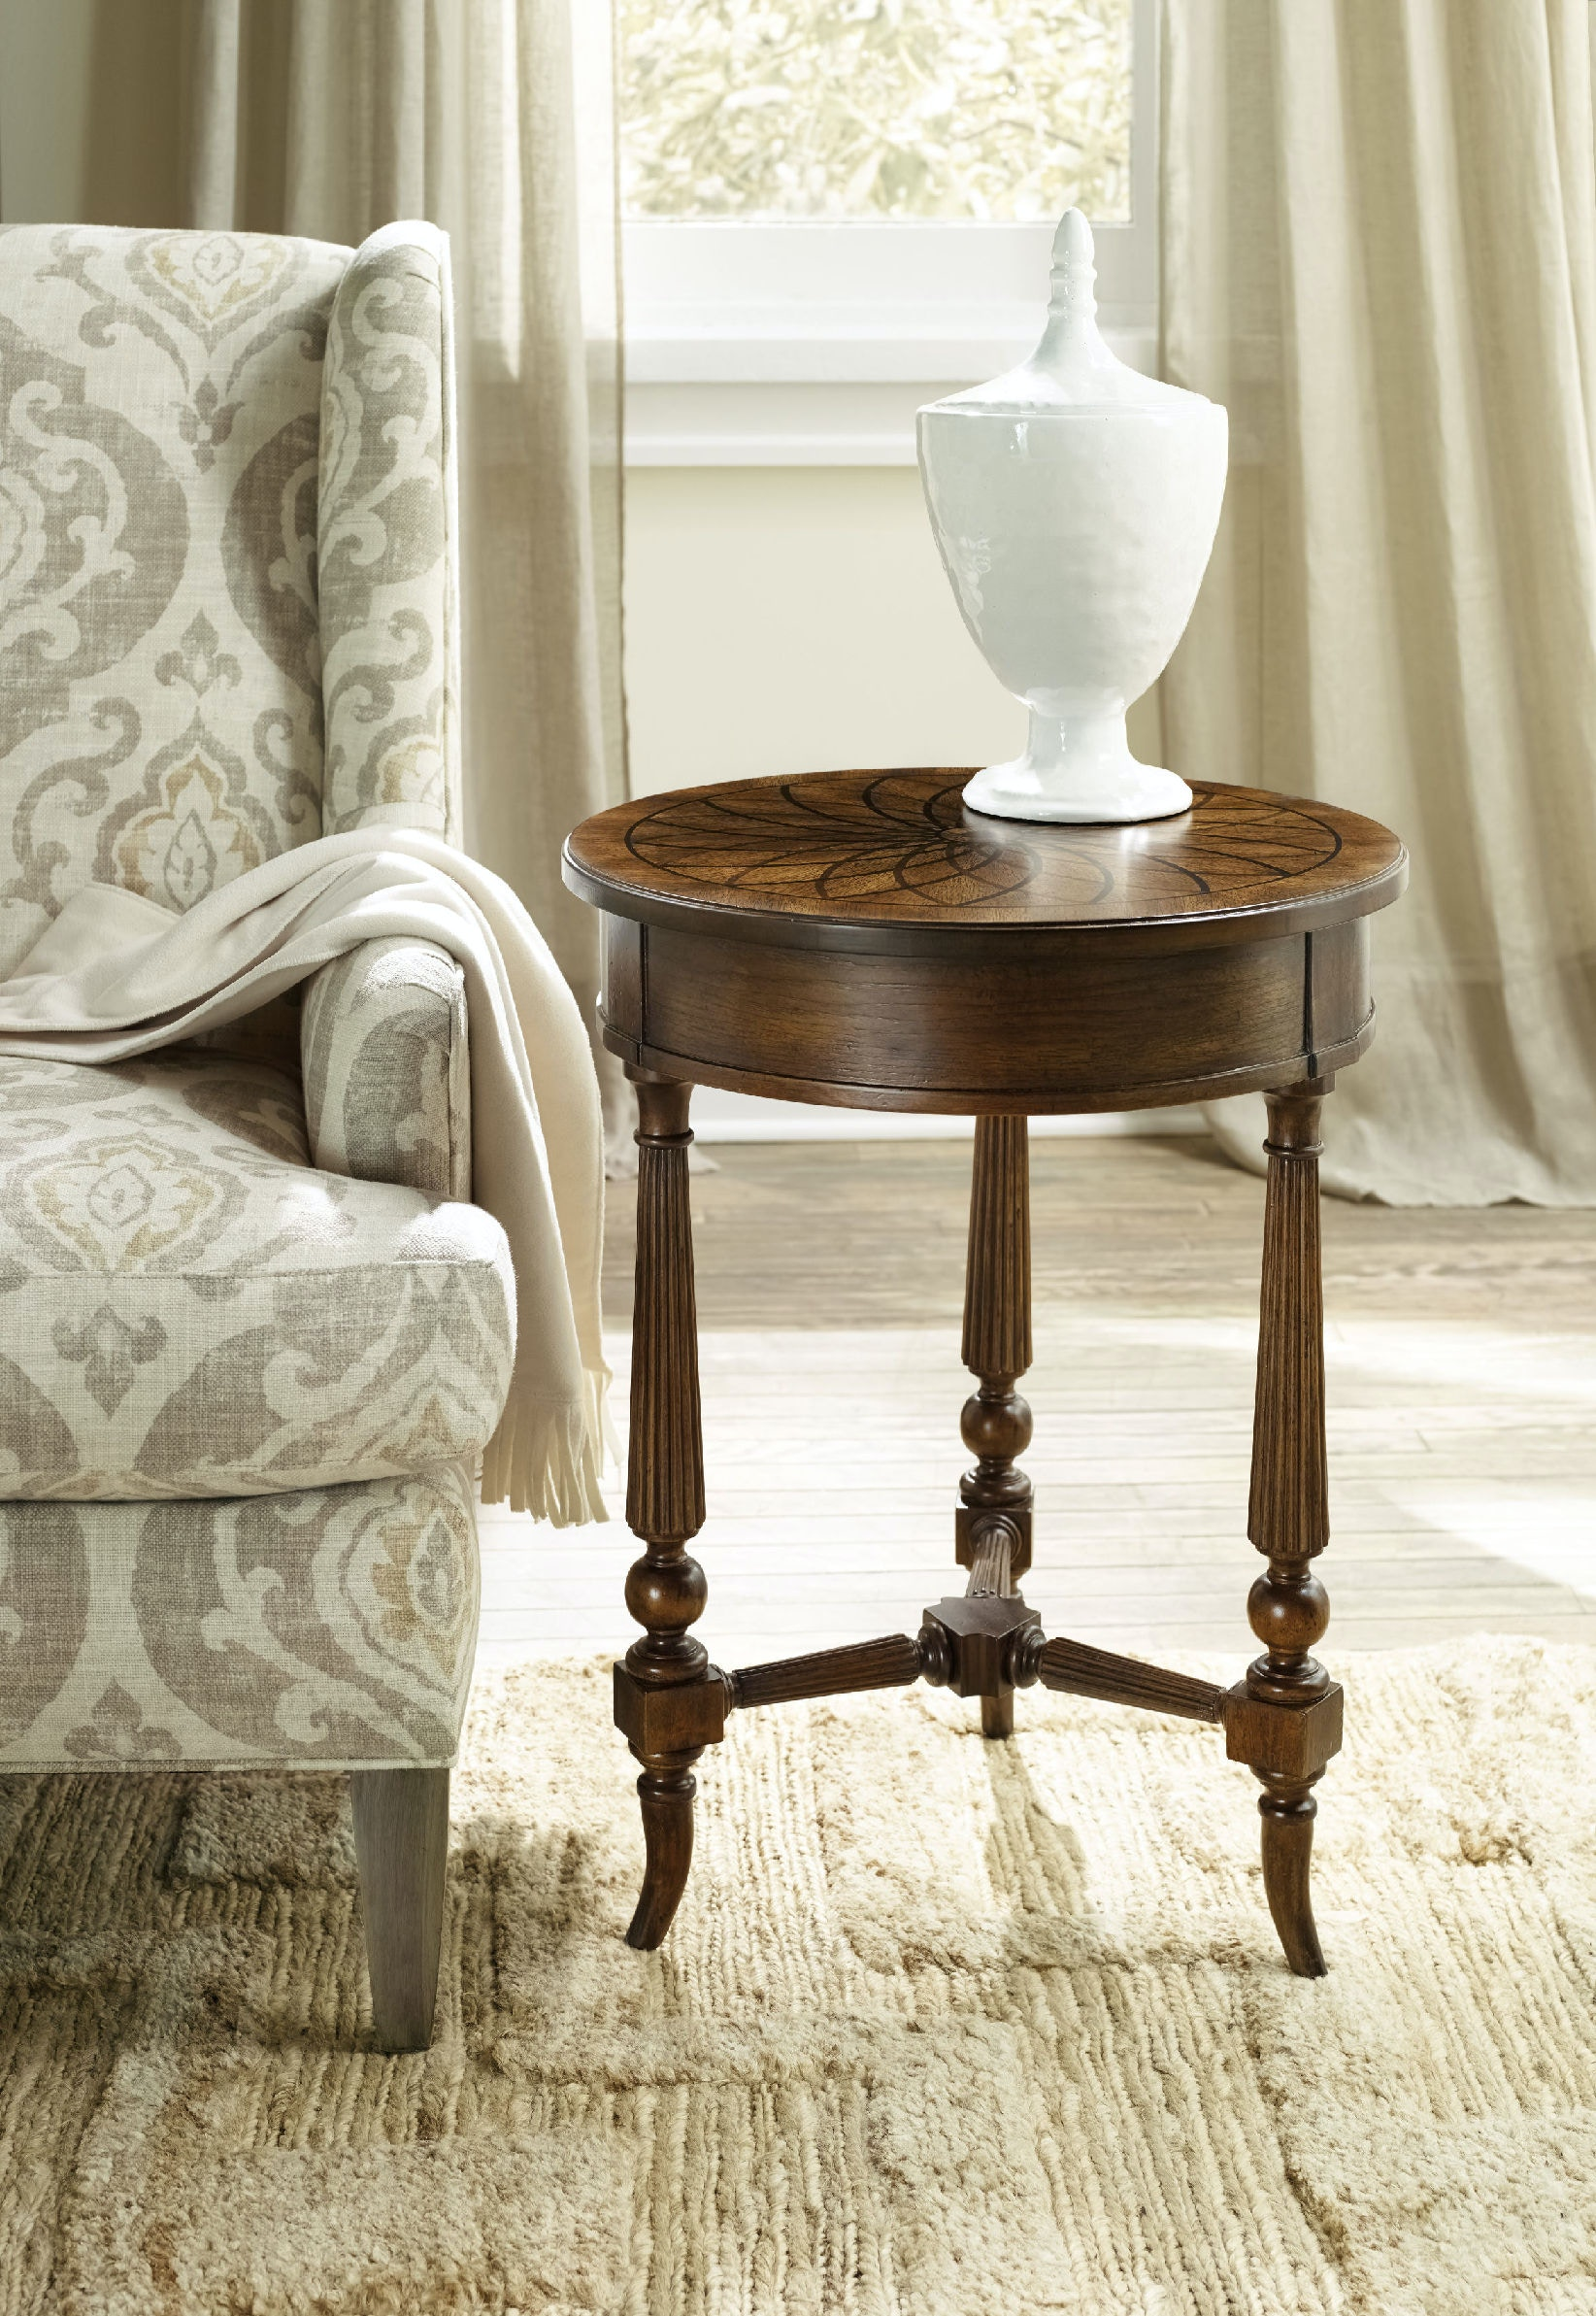 Hooker Furniture Archivist Round Accent Table 5447 50006